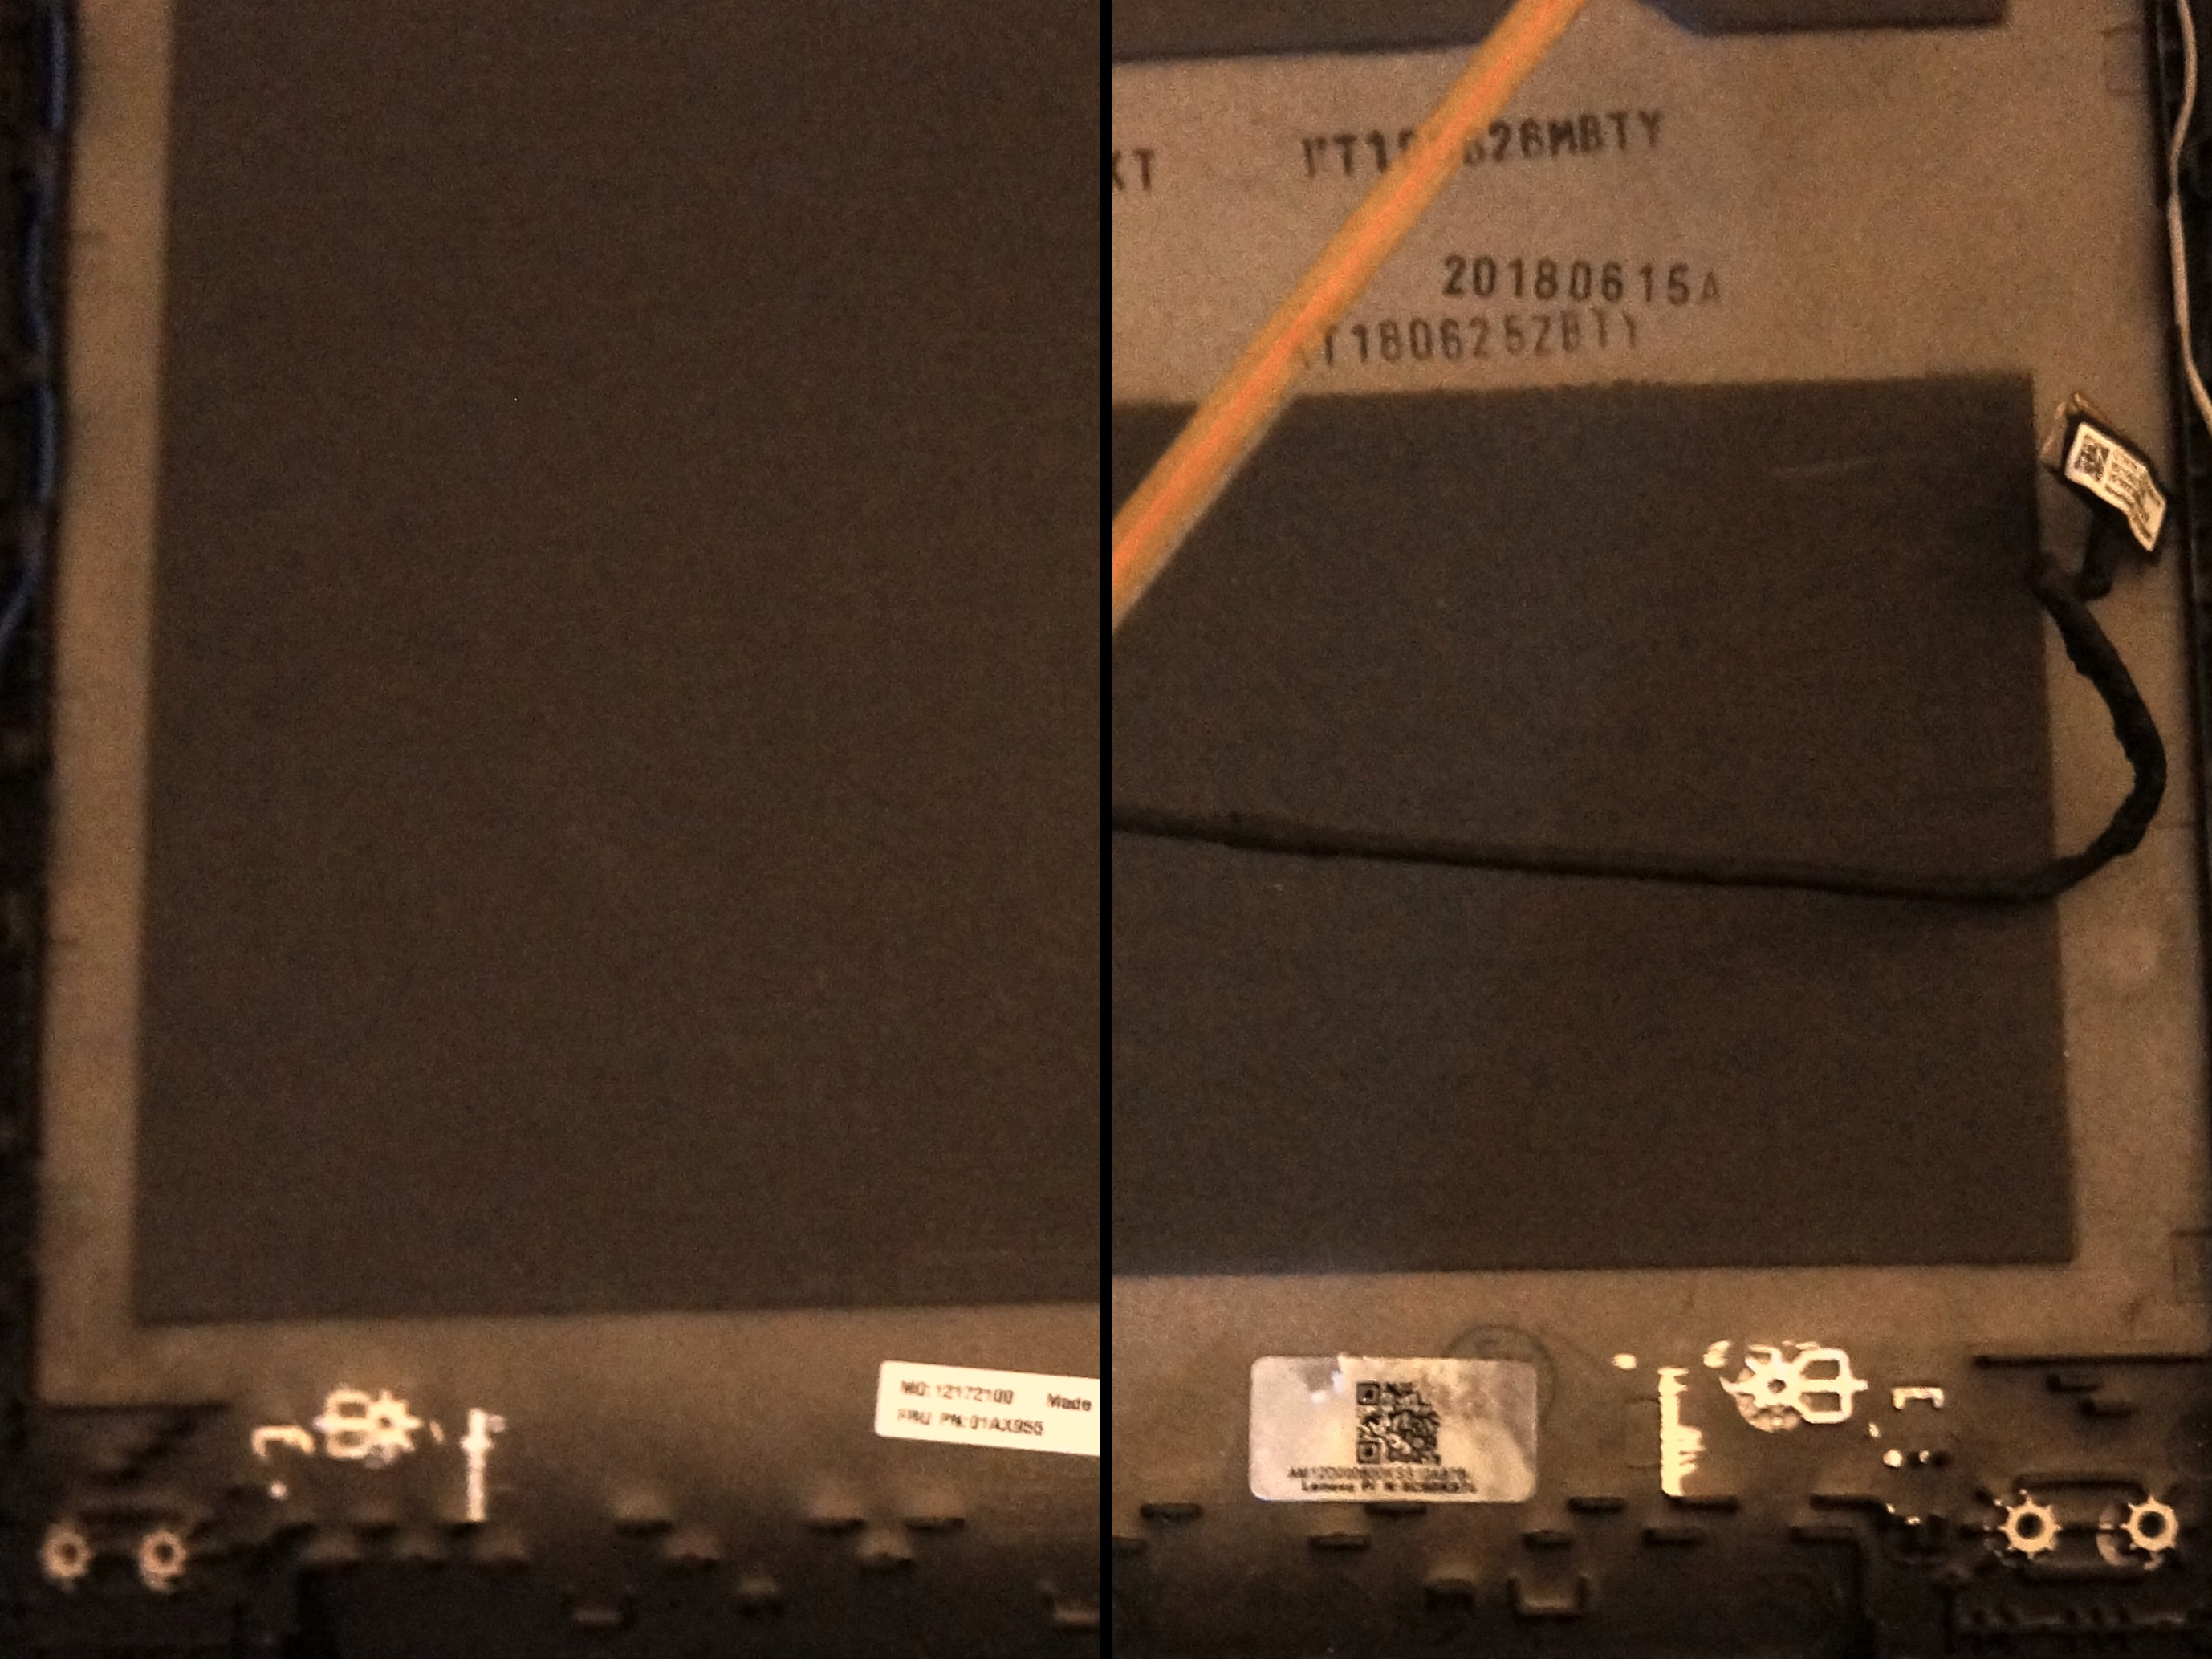 A FrankenPad Story: T25 with Quad-Core CPU and UHD LCD Panel - Foxy Blog